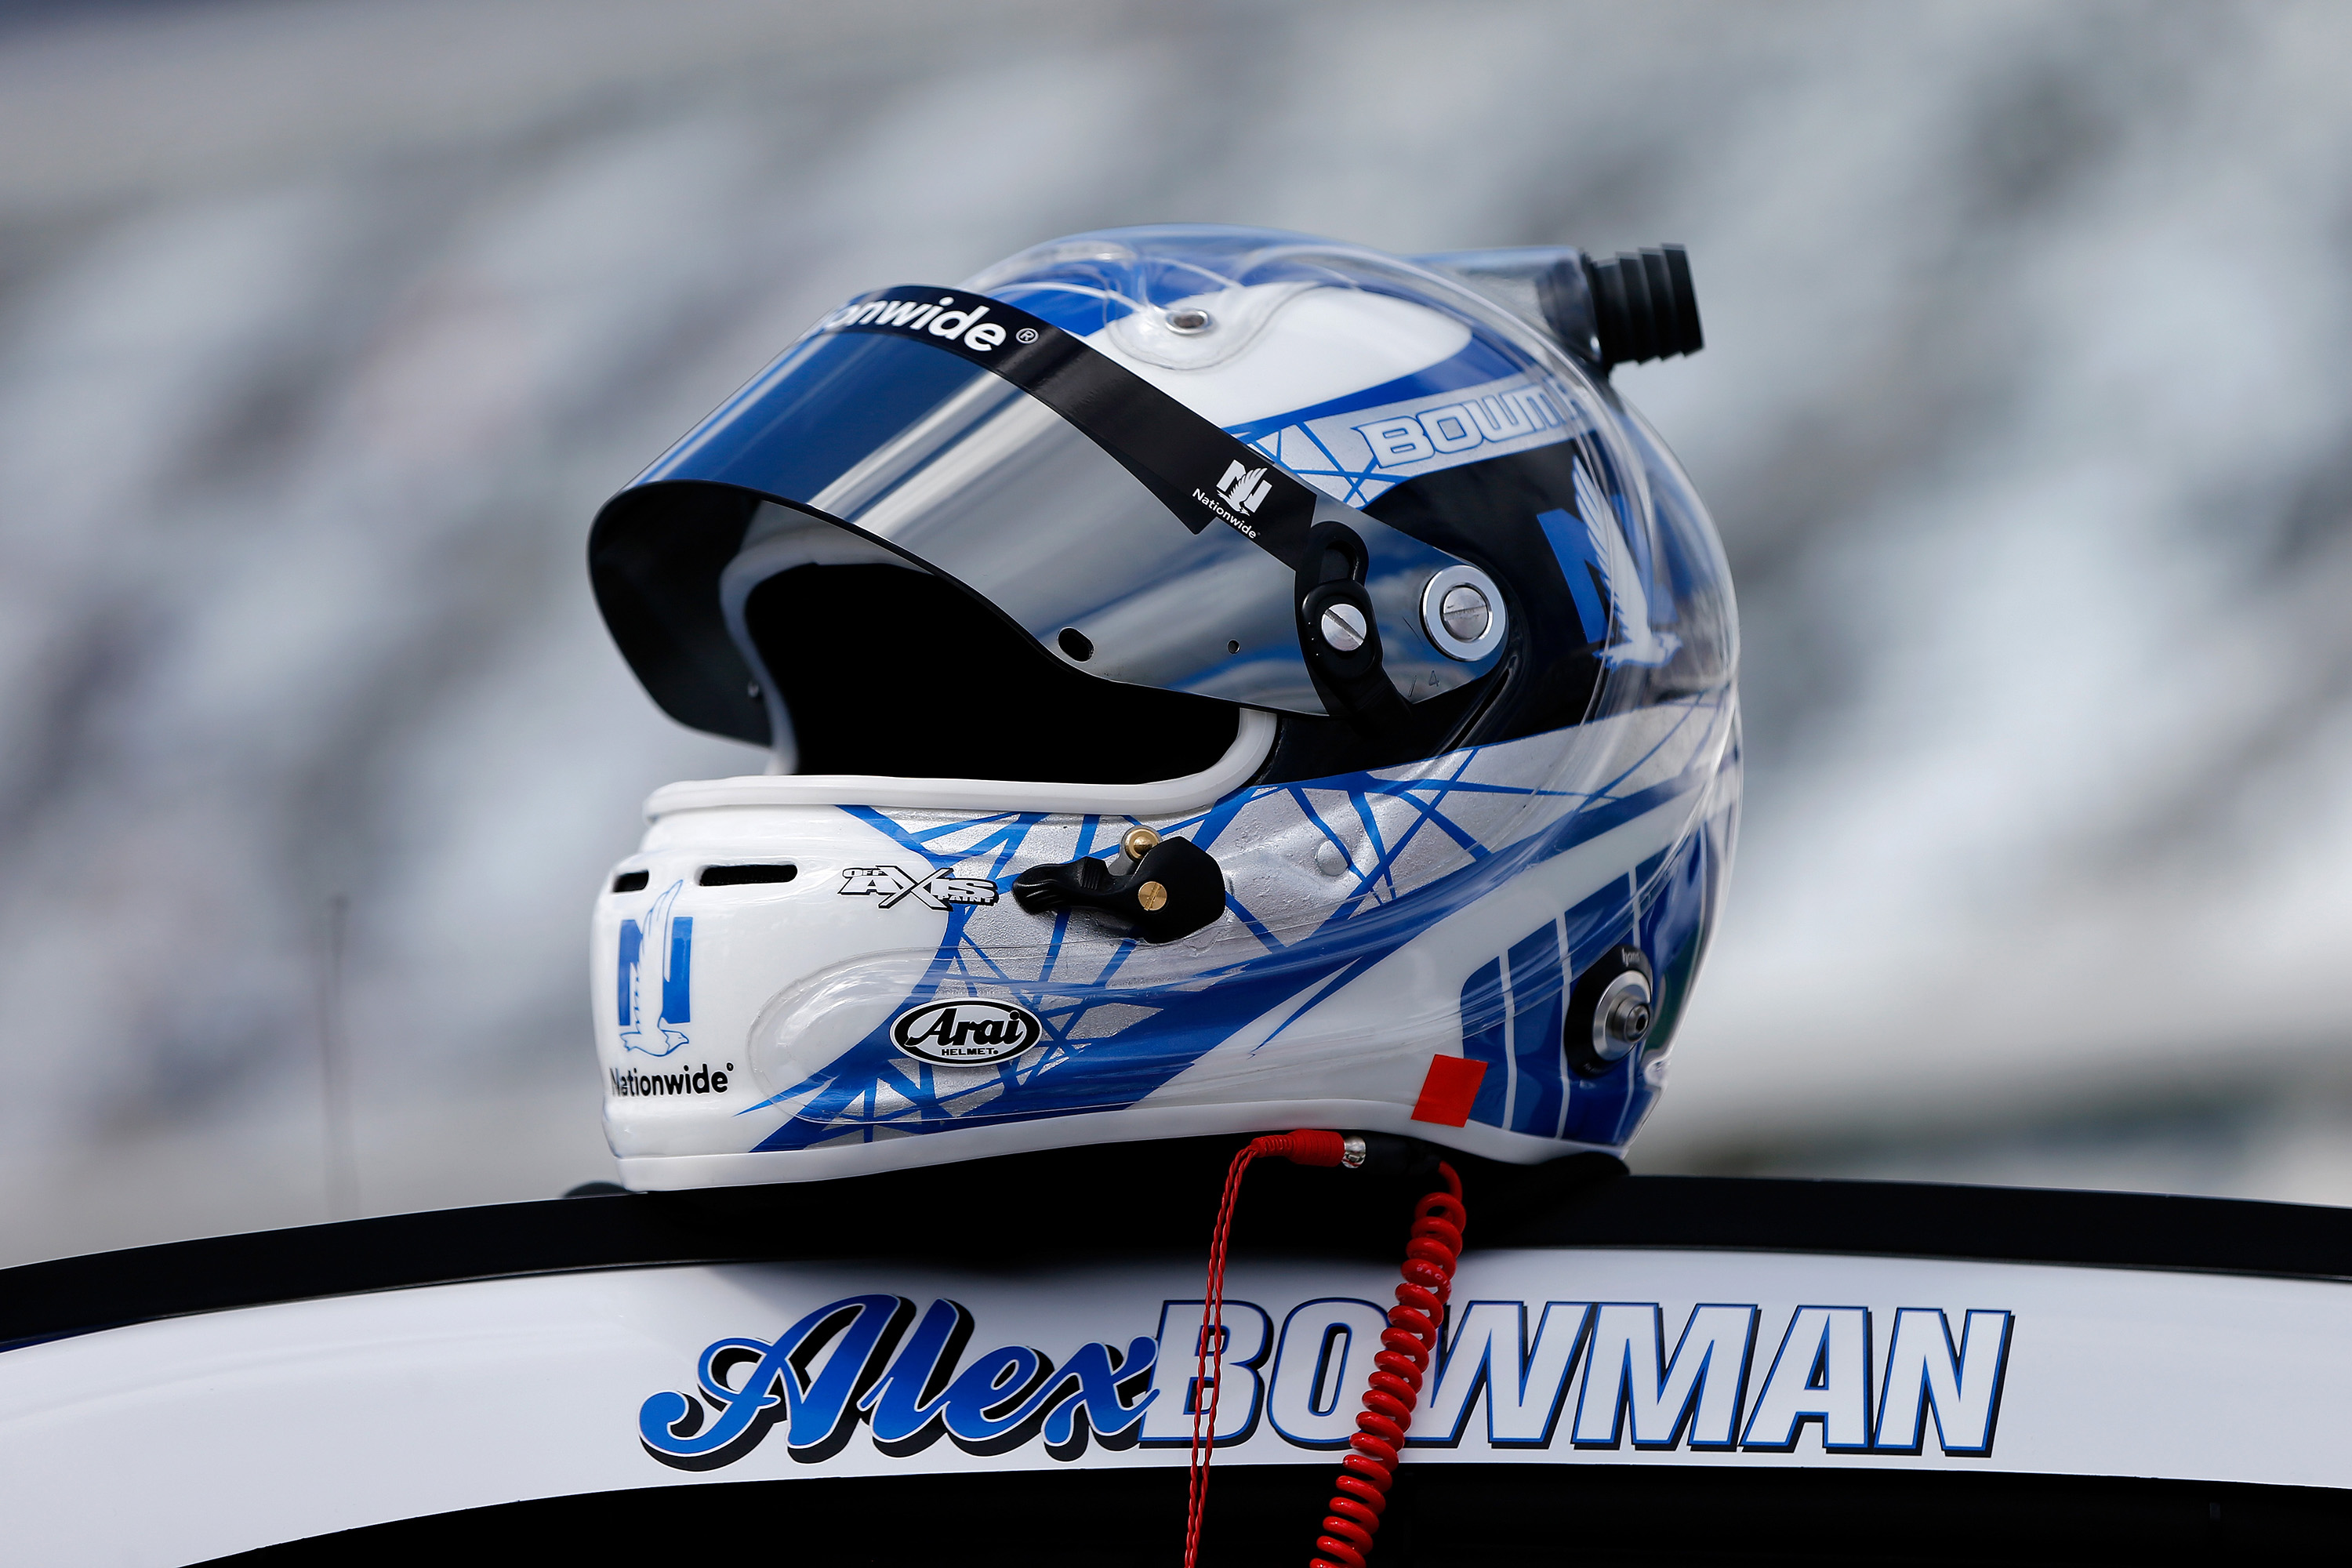 Dale Earnhardt Jr replacement has been signed - Alex Bowman will drive #88 in 2018